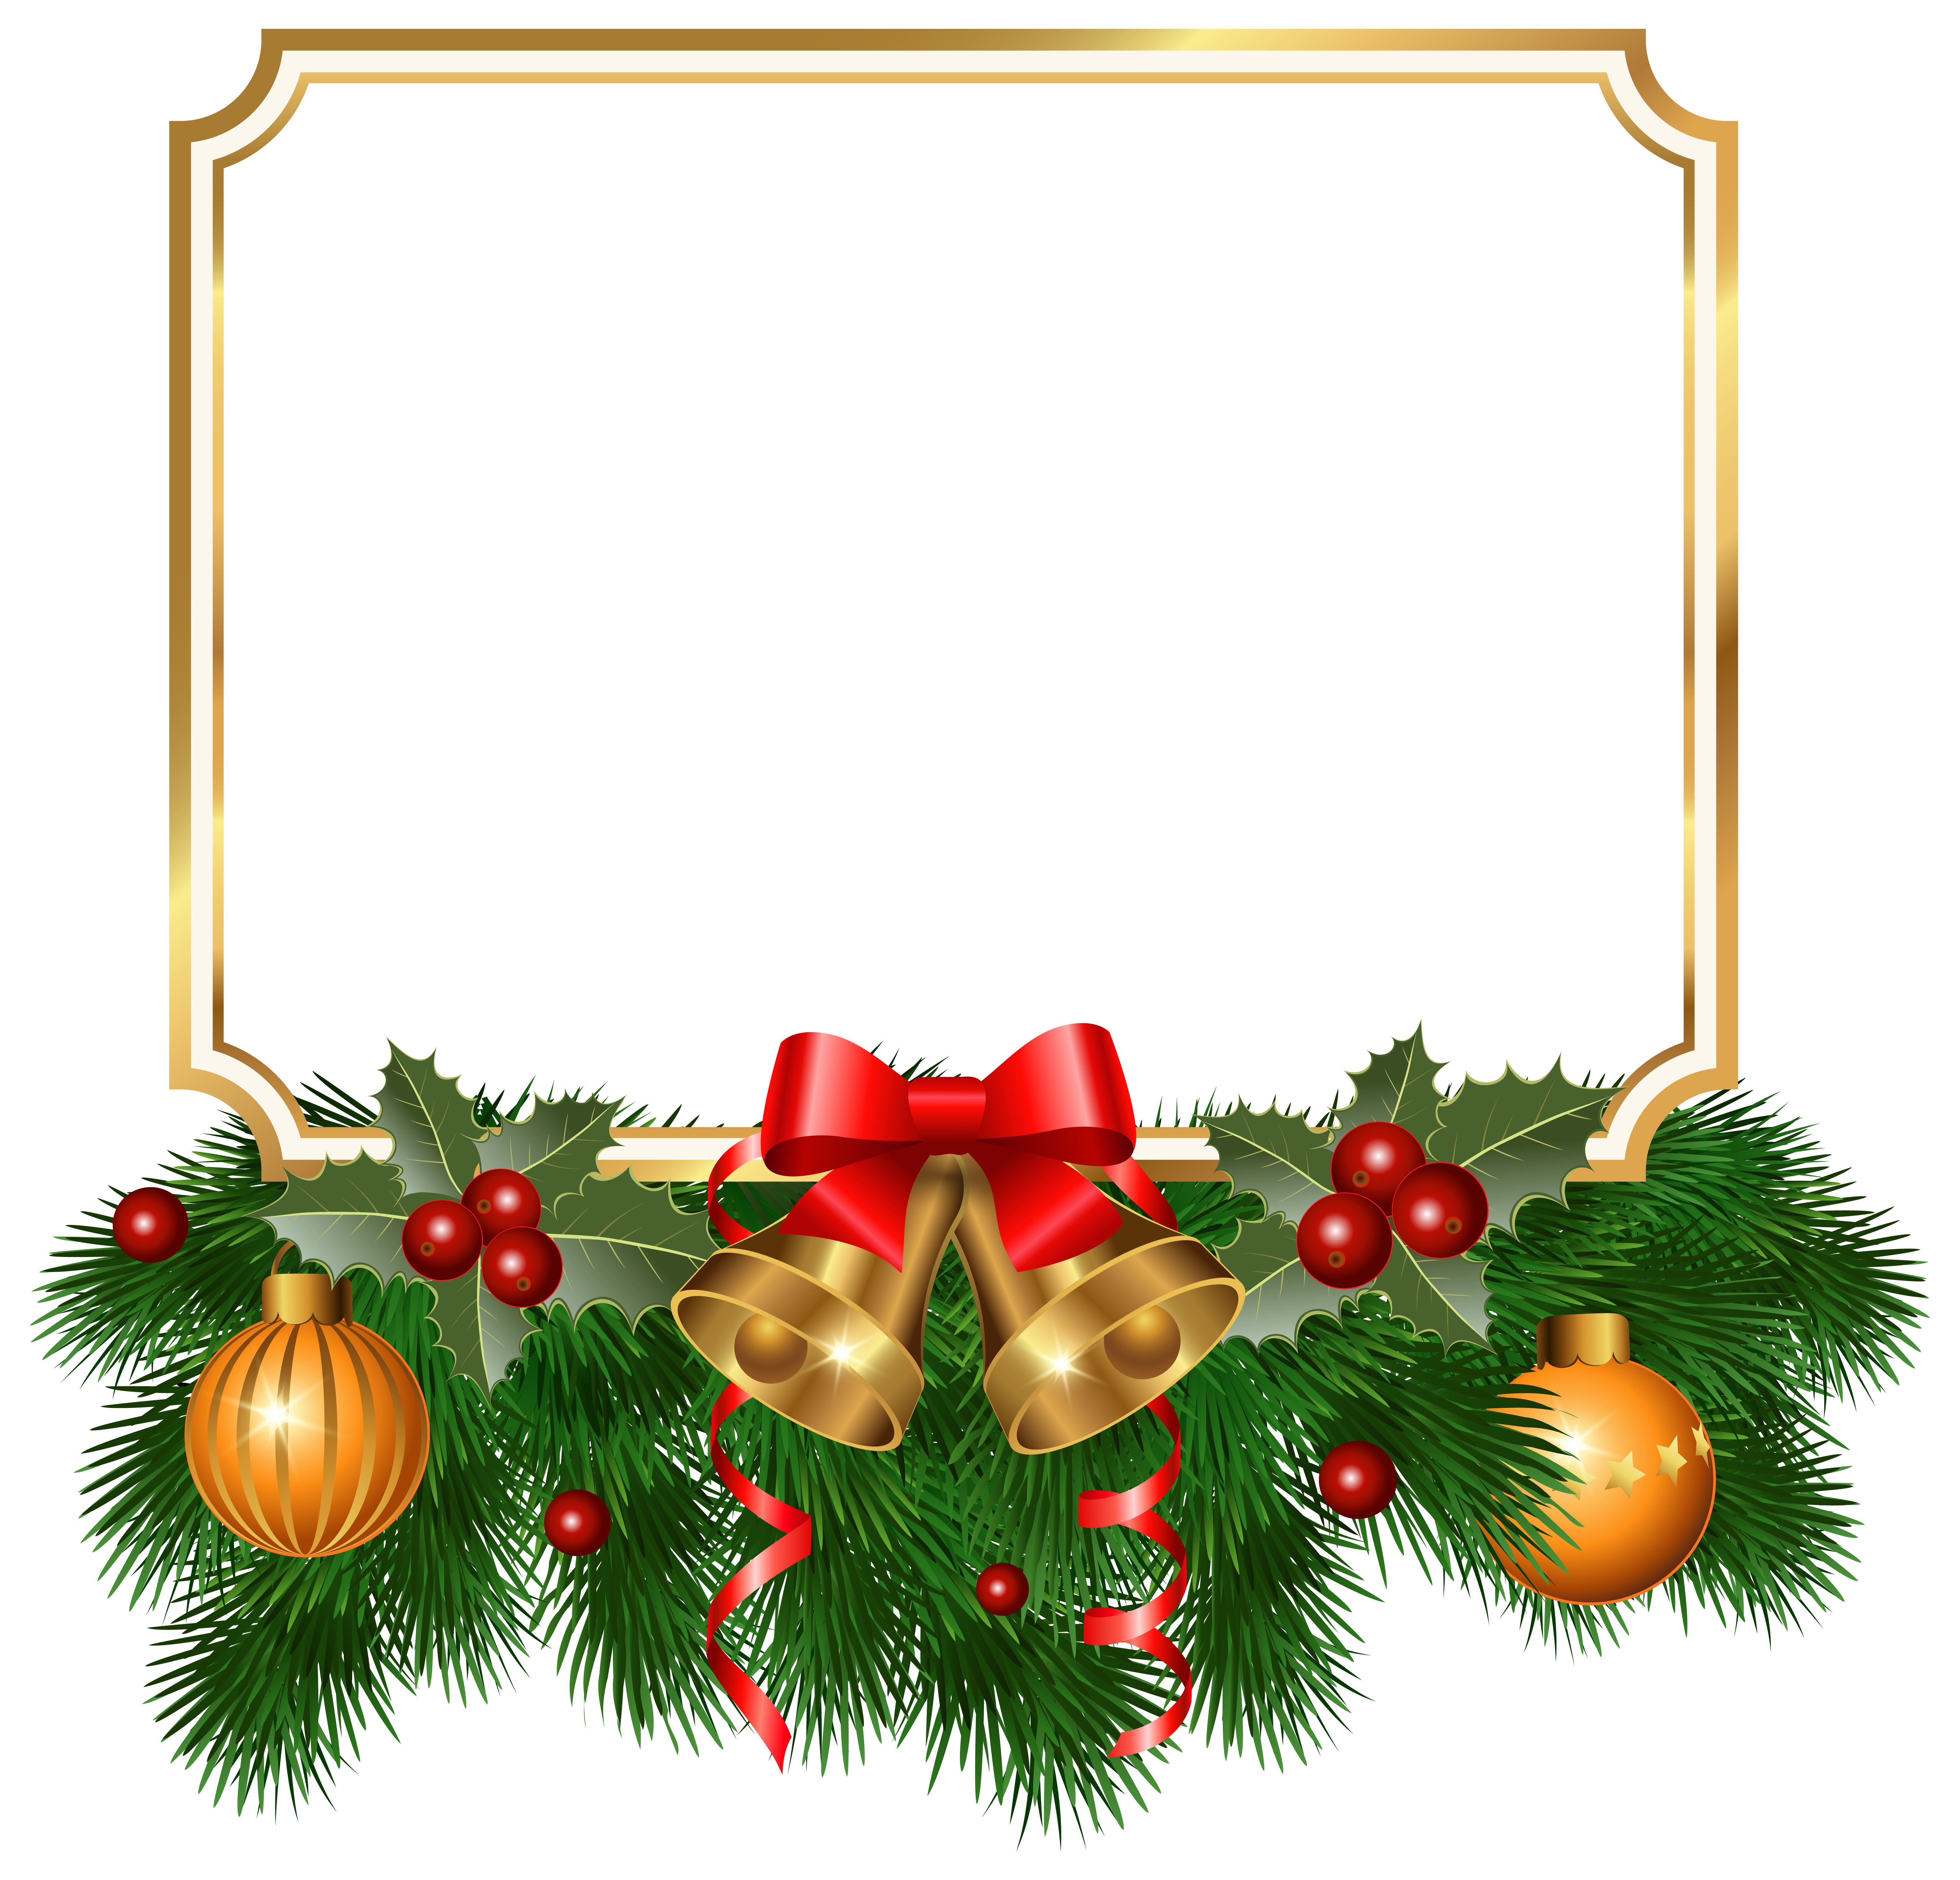 Golden clipart image gallery. Christmas border png